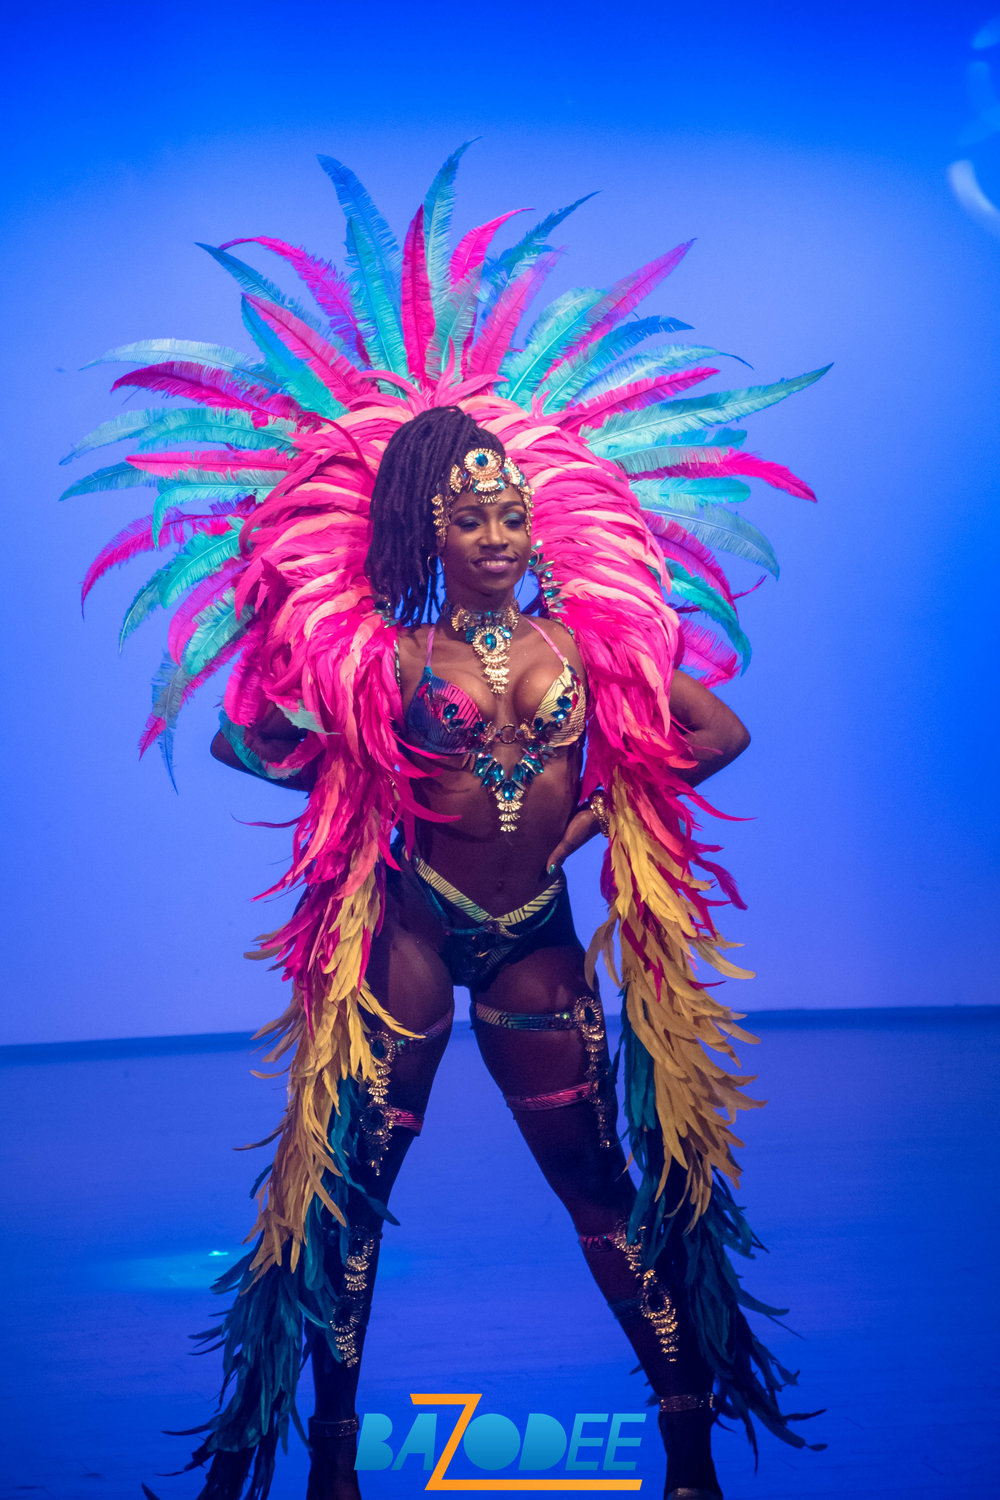 ZULU INTL  - Well really, who doesn't love Nandi? Riddim Tribe dancer meets Machel dancer meets Band Launch body. We were first impressed by her when she commanded massive stage presence without saying a word at the Yello Bashment Soca Finals 2017, in a Snap Brandy performance. Since then her star has continued to rise. It is Nandi and the Riddim Tribe dancers who are the true winners of Crop Over.